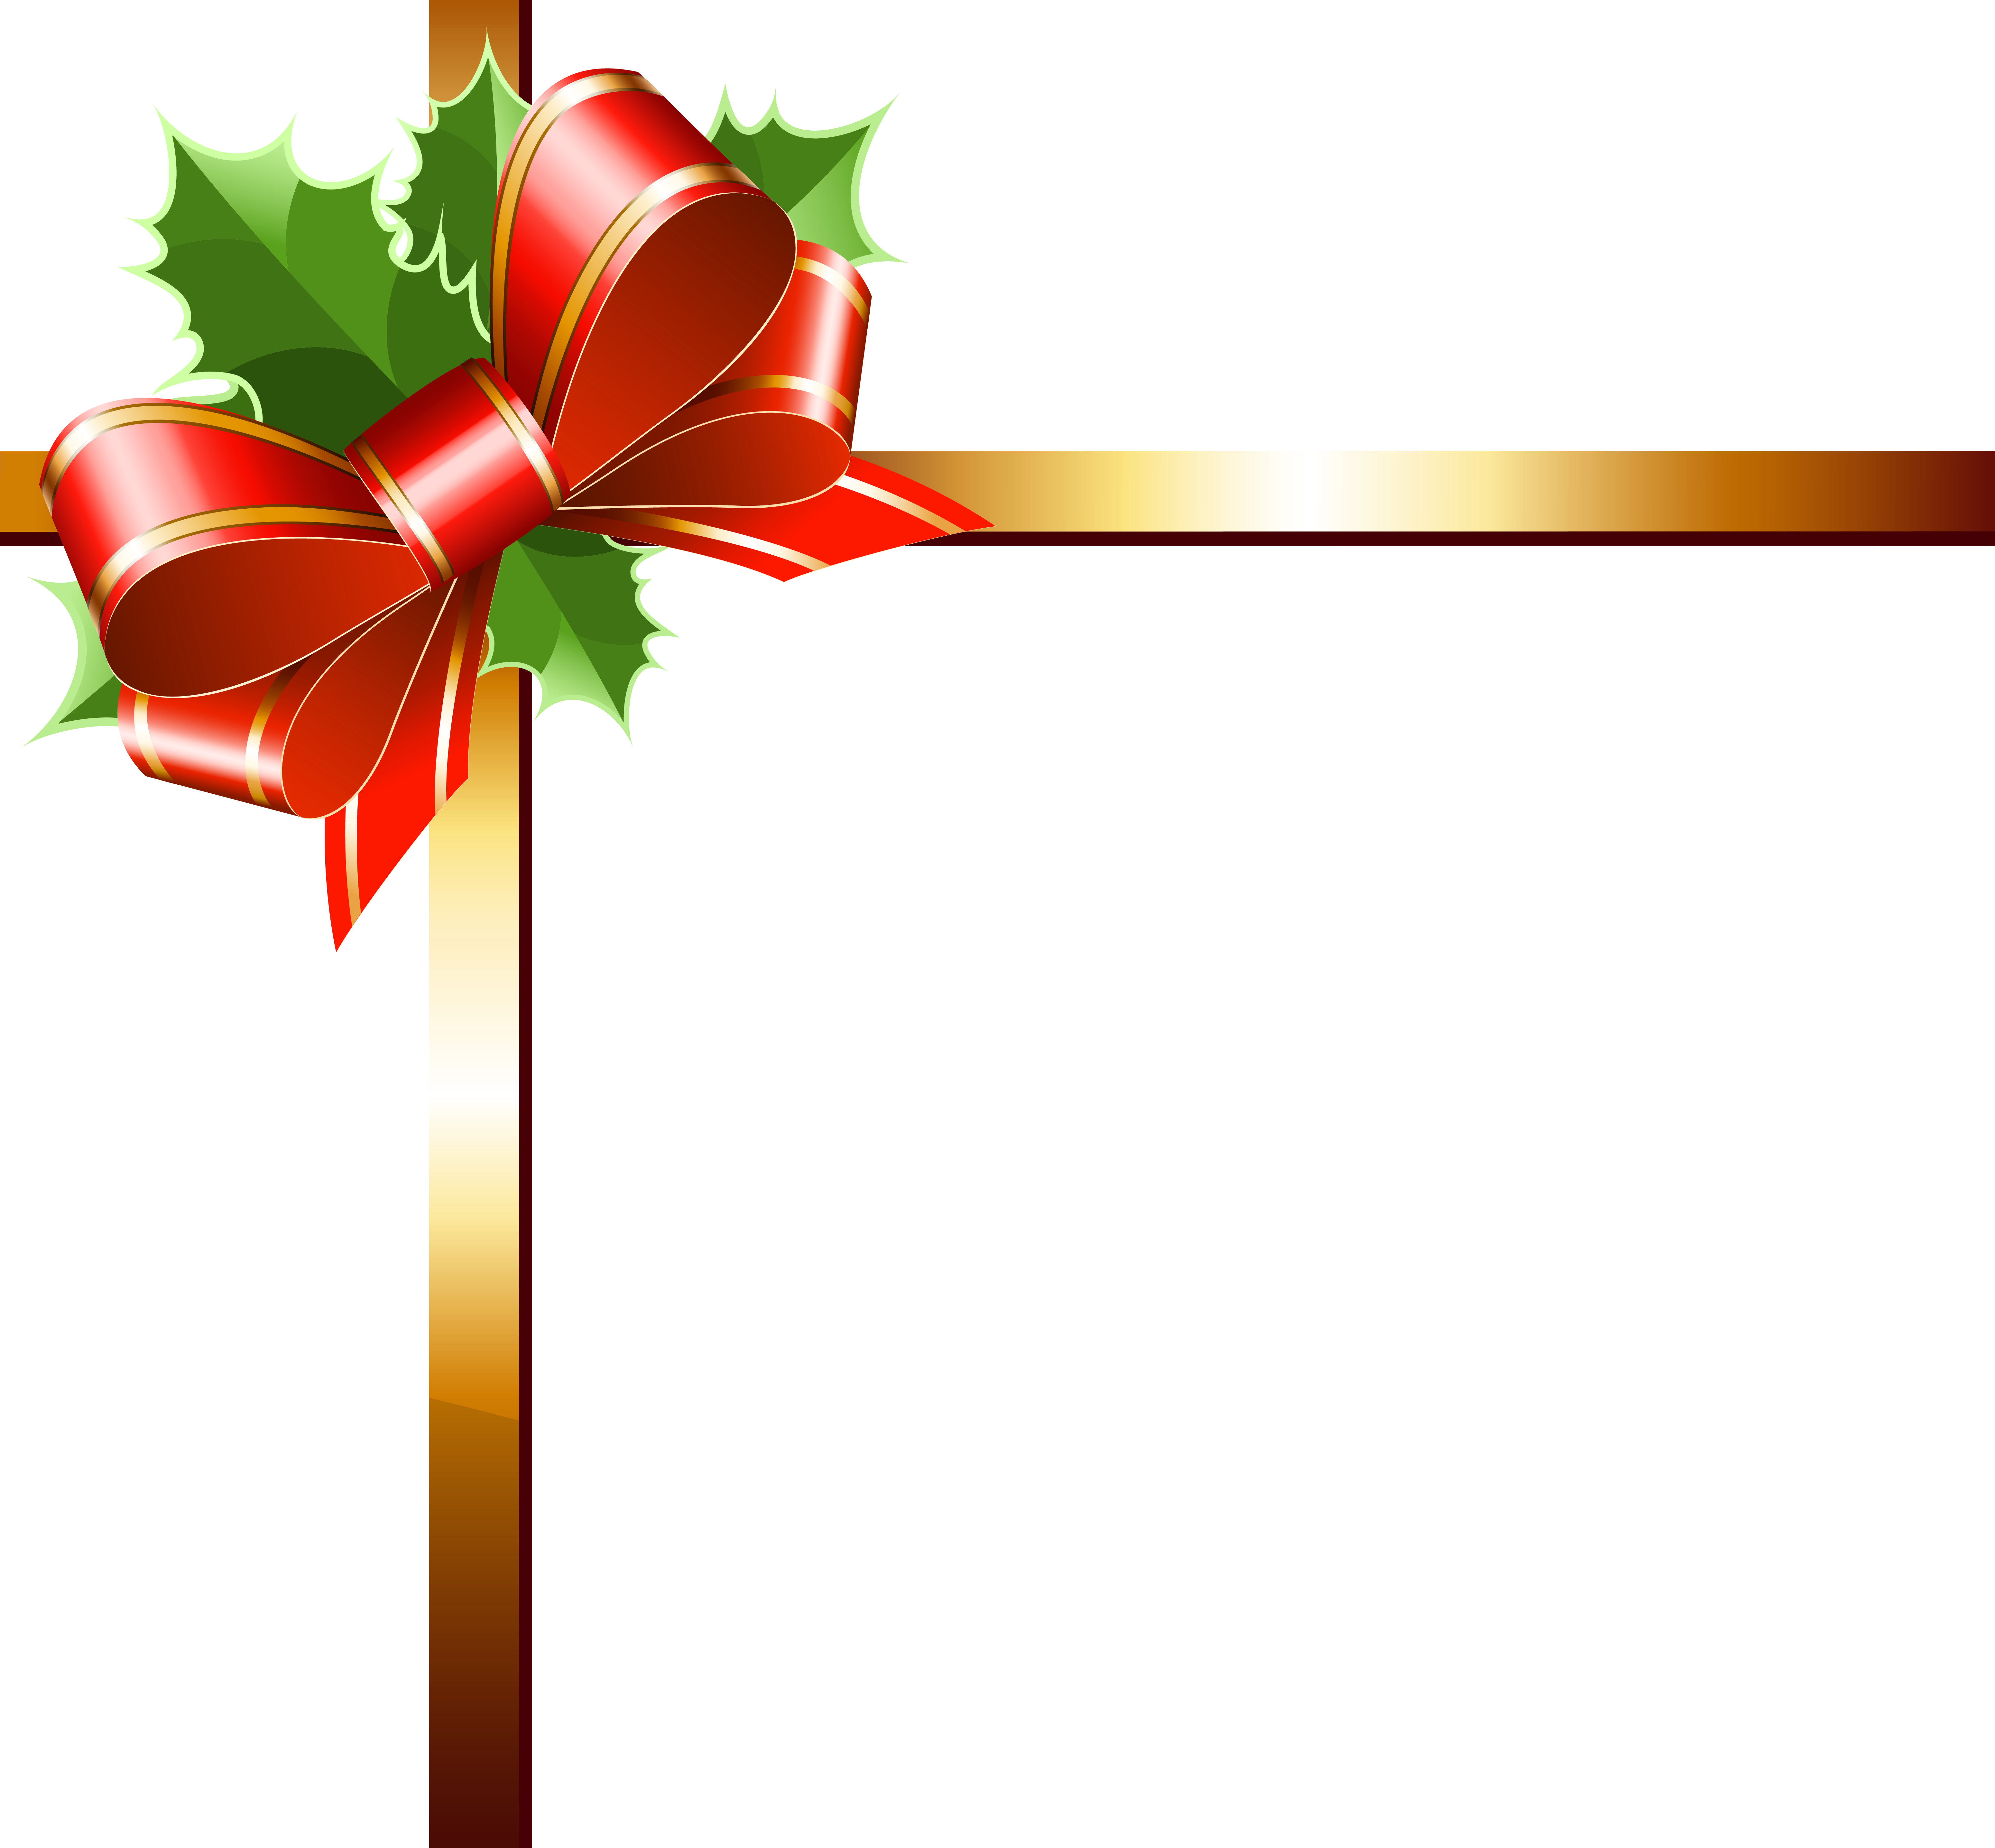 Holley clipart ribbon Christmas Clipart Gallery Yopriceville Image